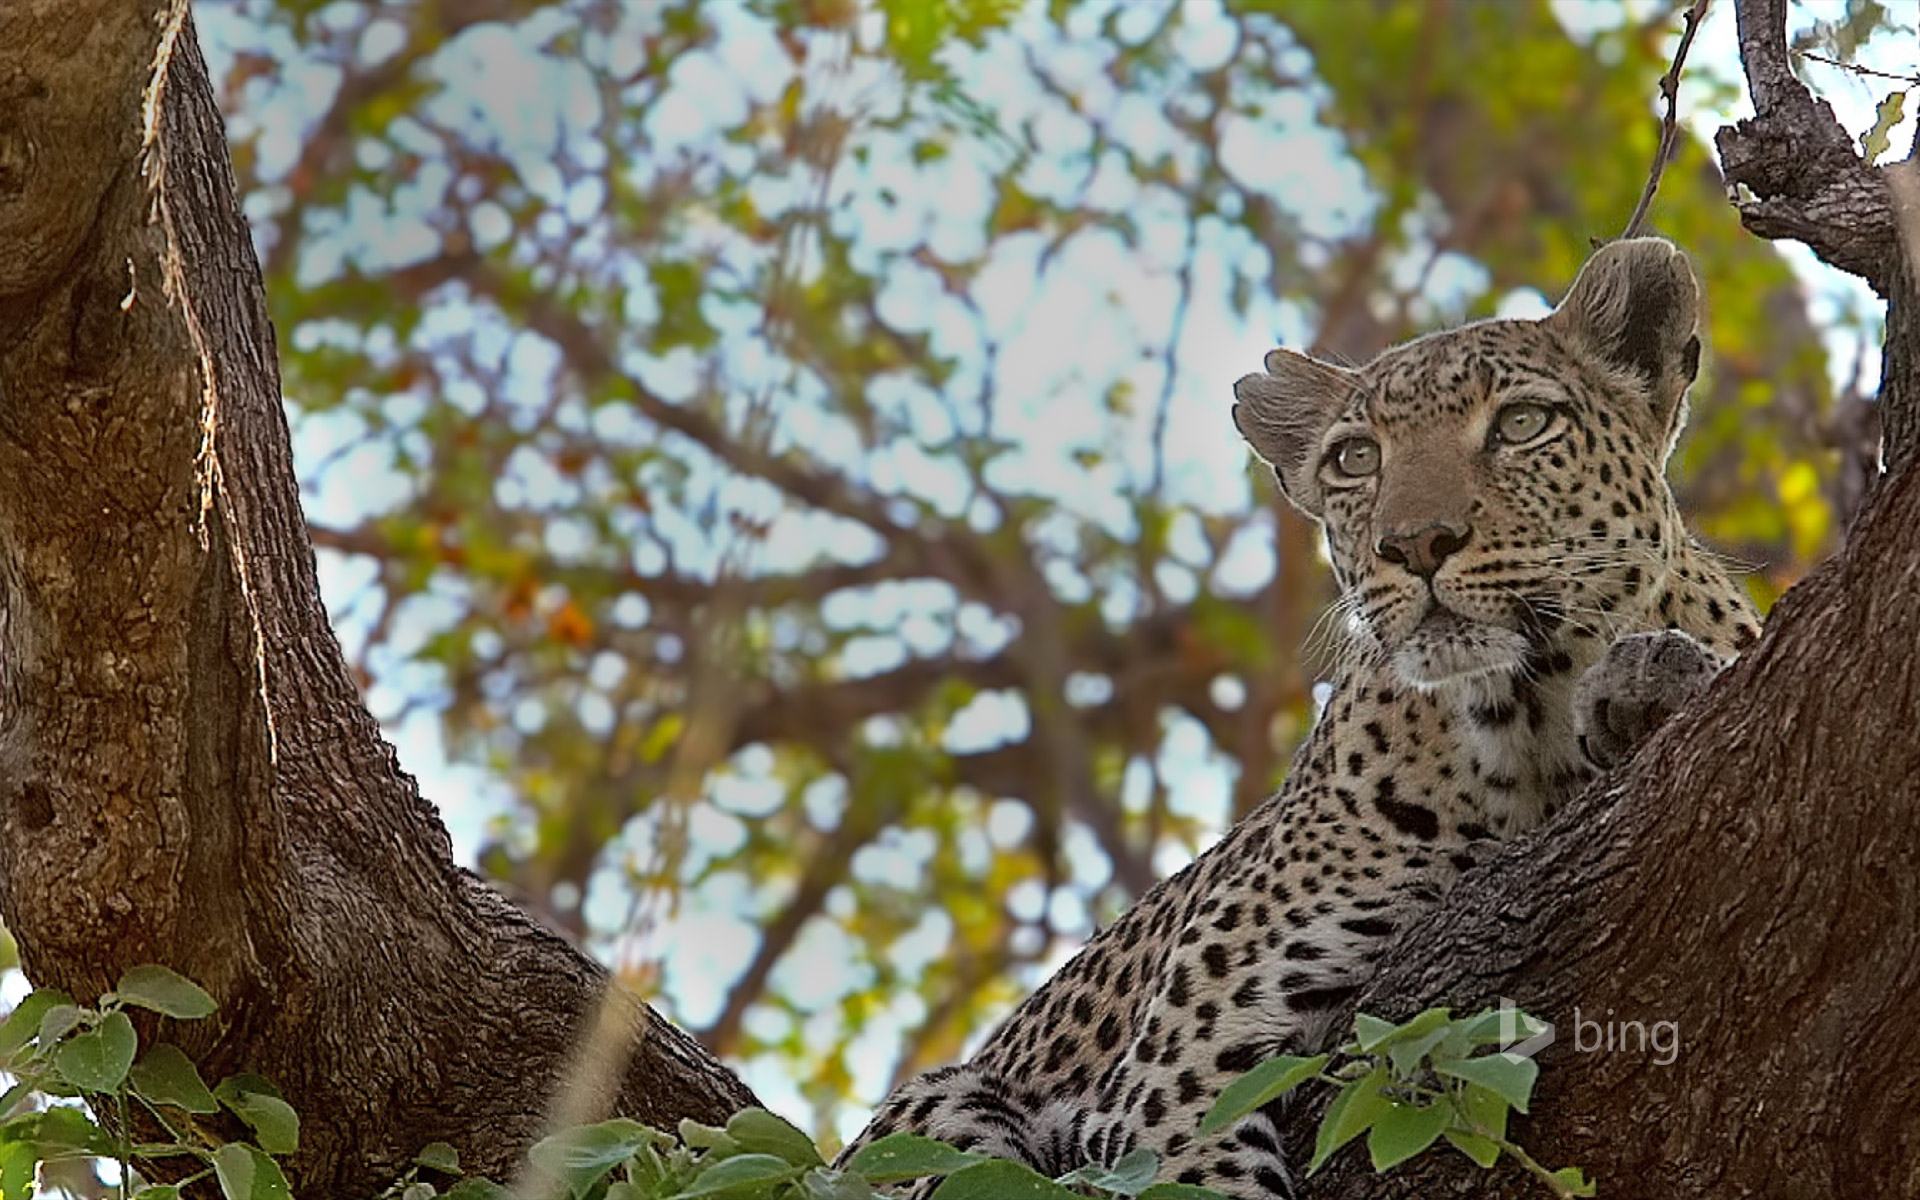 Leopard perched in a tree in the Moremi Game Reserve, Botswana